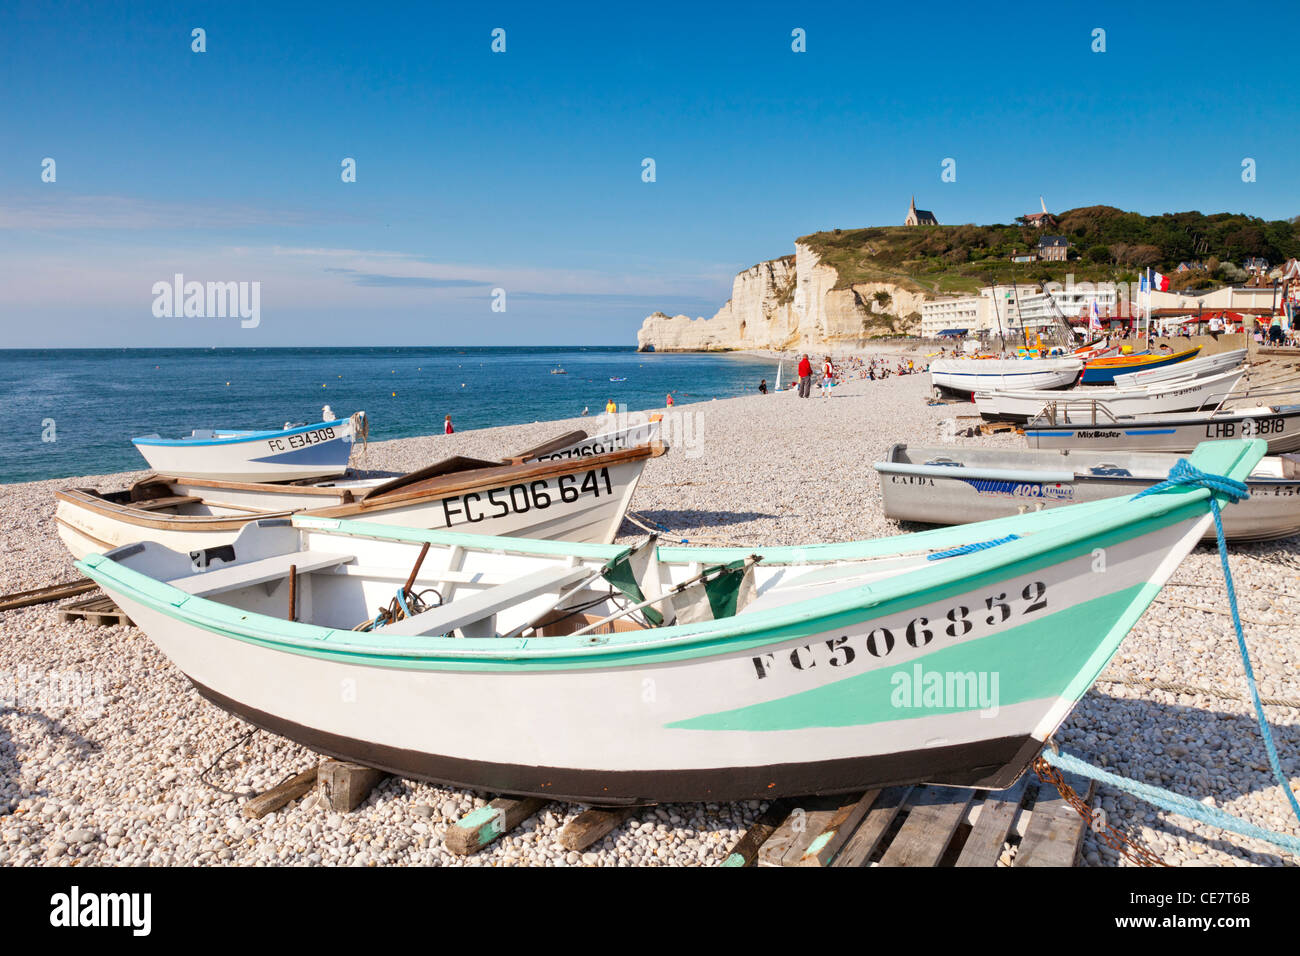 Boats on the beach at Etretat, Normandy, France. - Stock Image